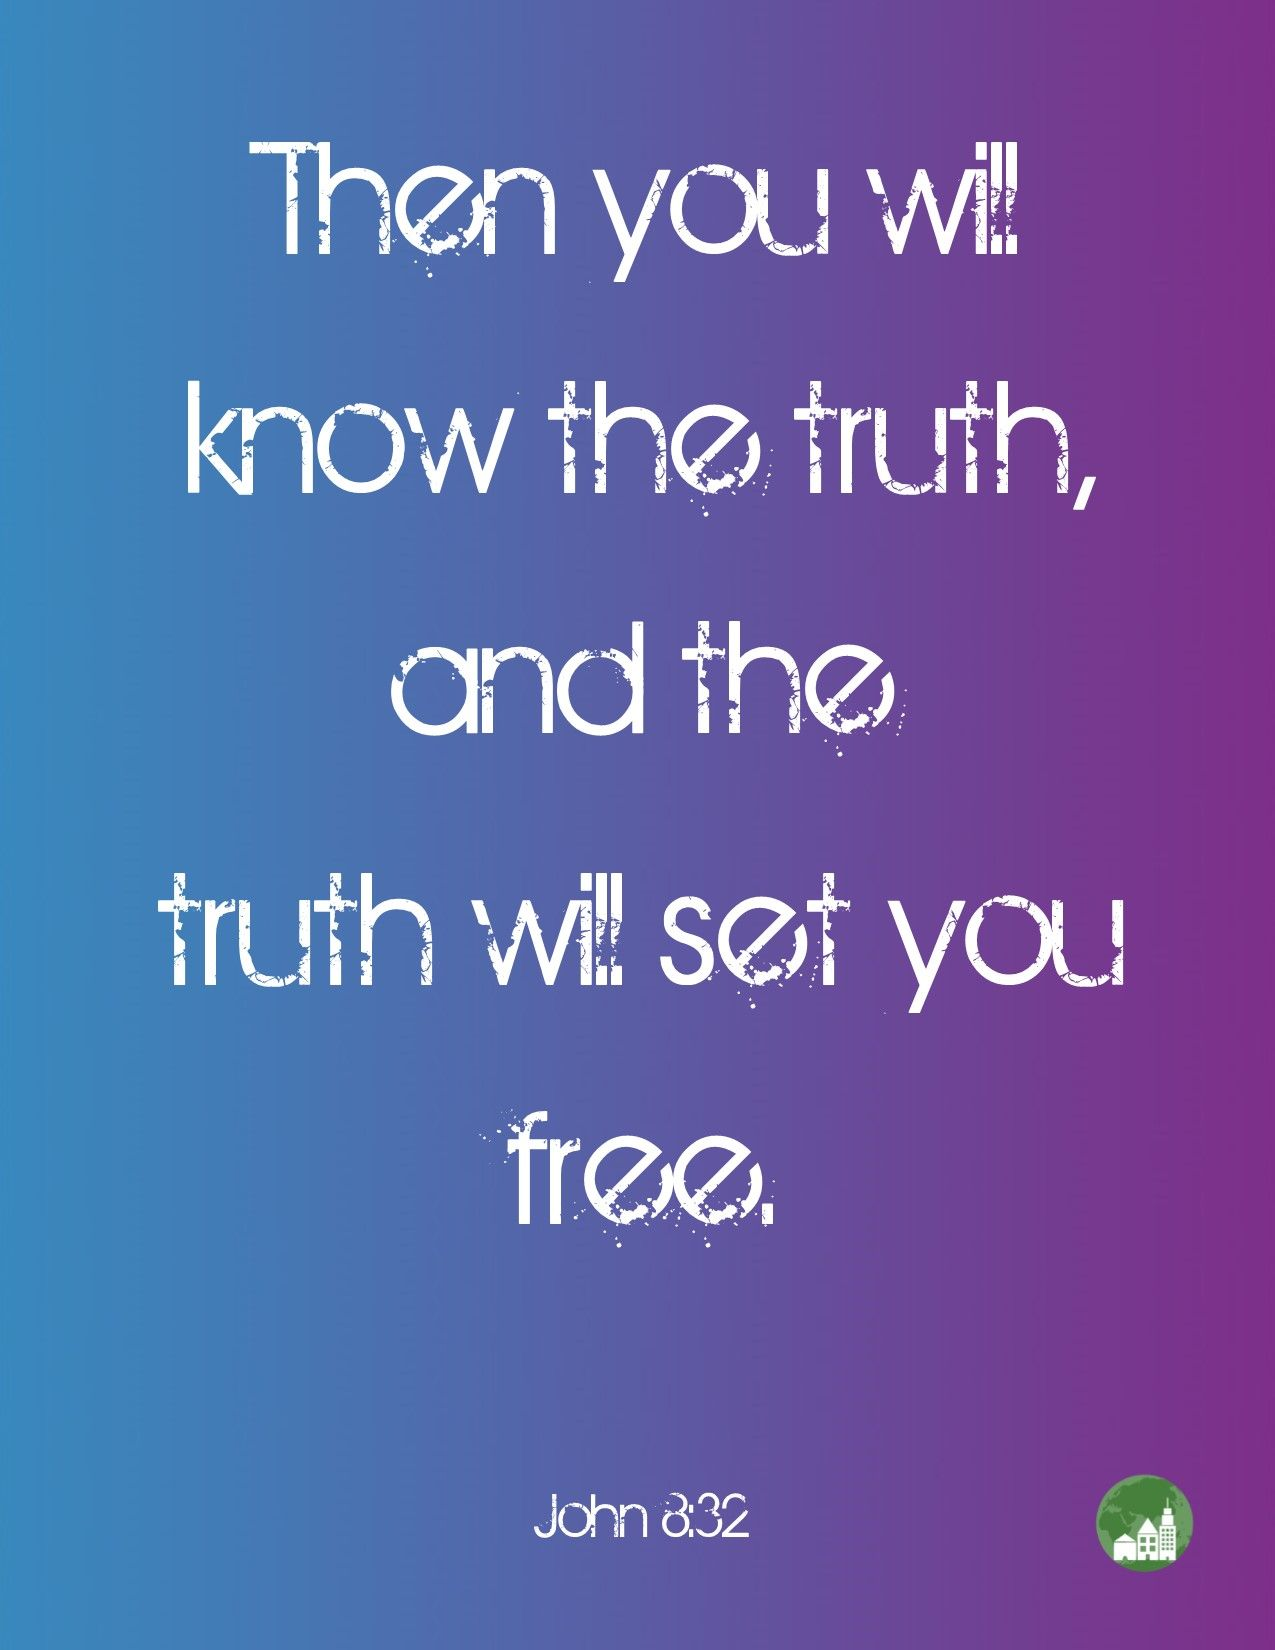 Then you will know the truth, and the truth wil set you free. Amen! www.reachavillage.org